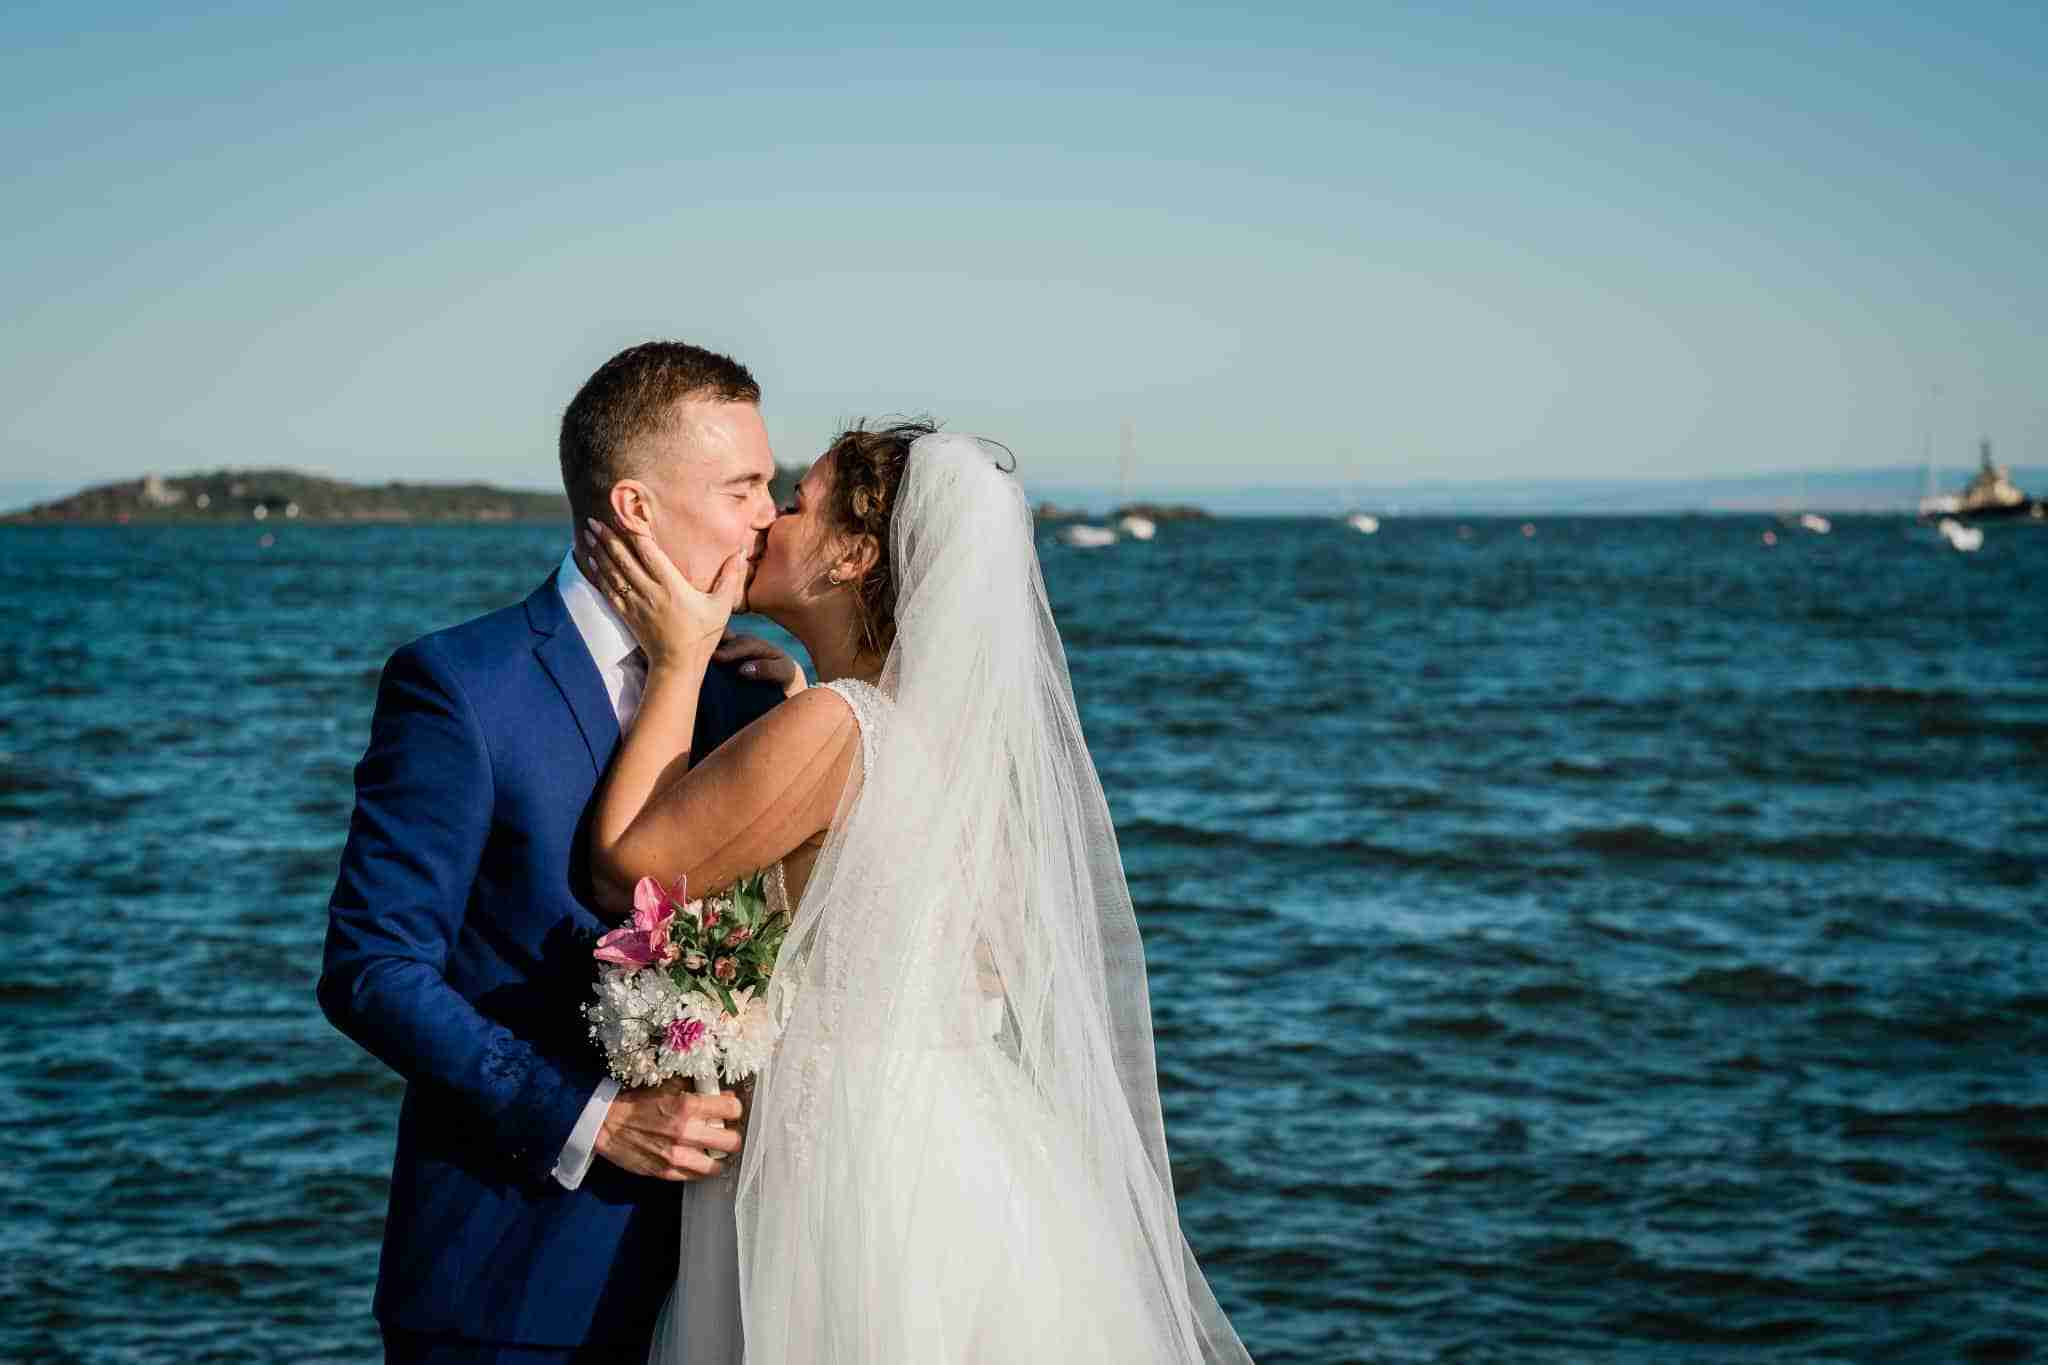 Anna + Tuukka – An Intimate Wedding at Dalgety Bay Sailing Club, Fife